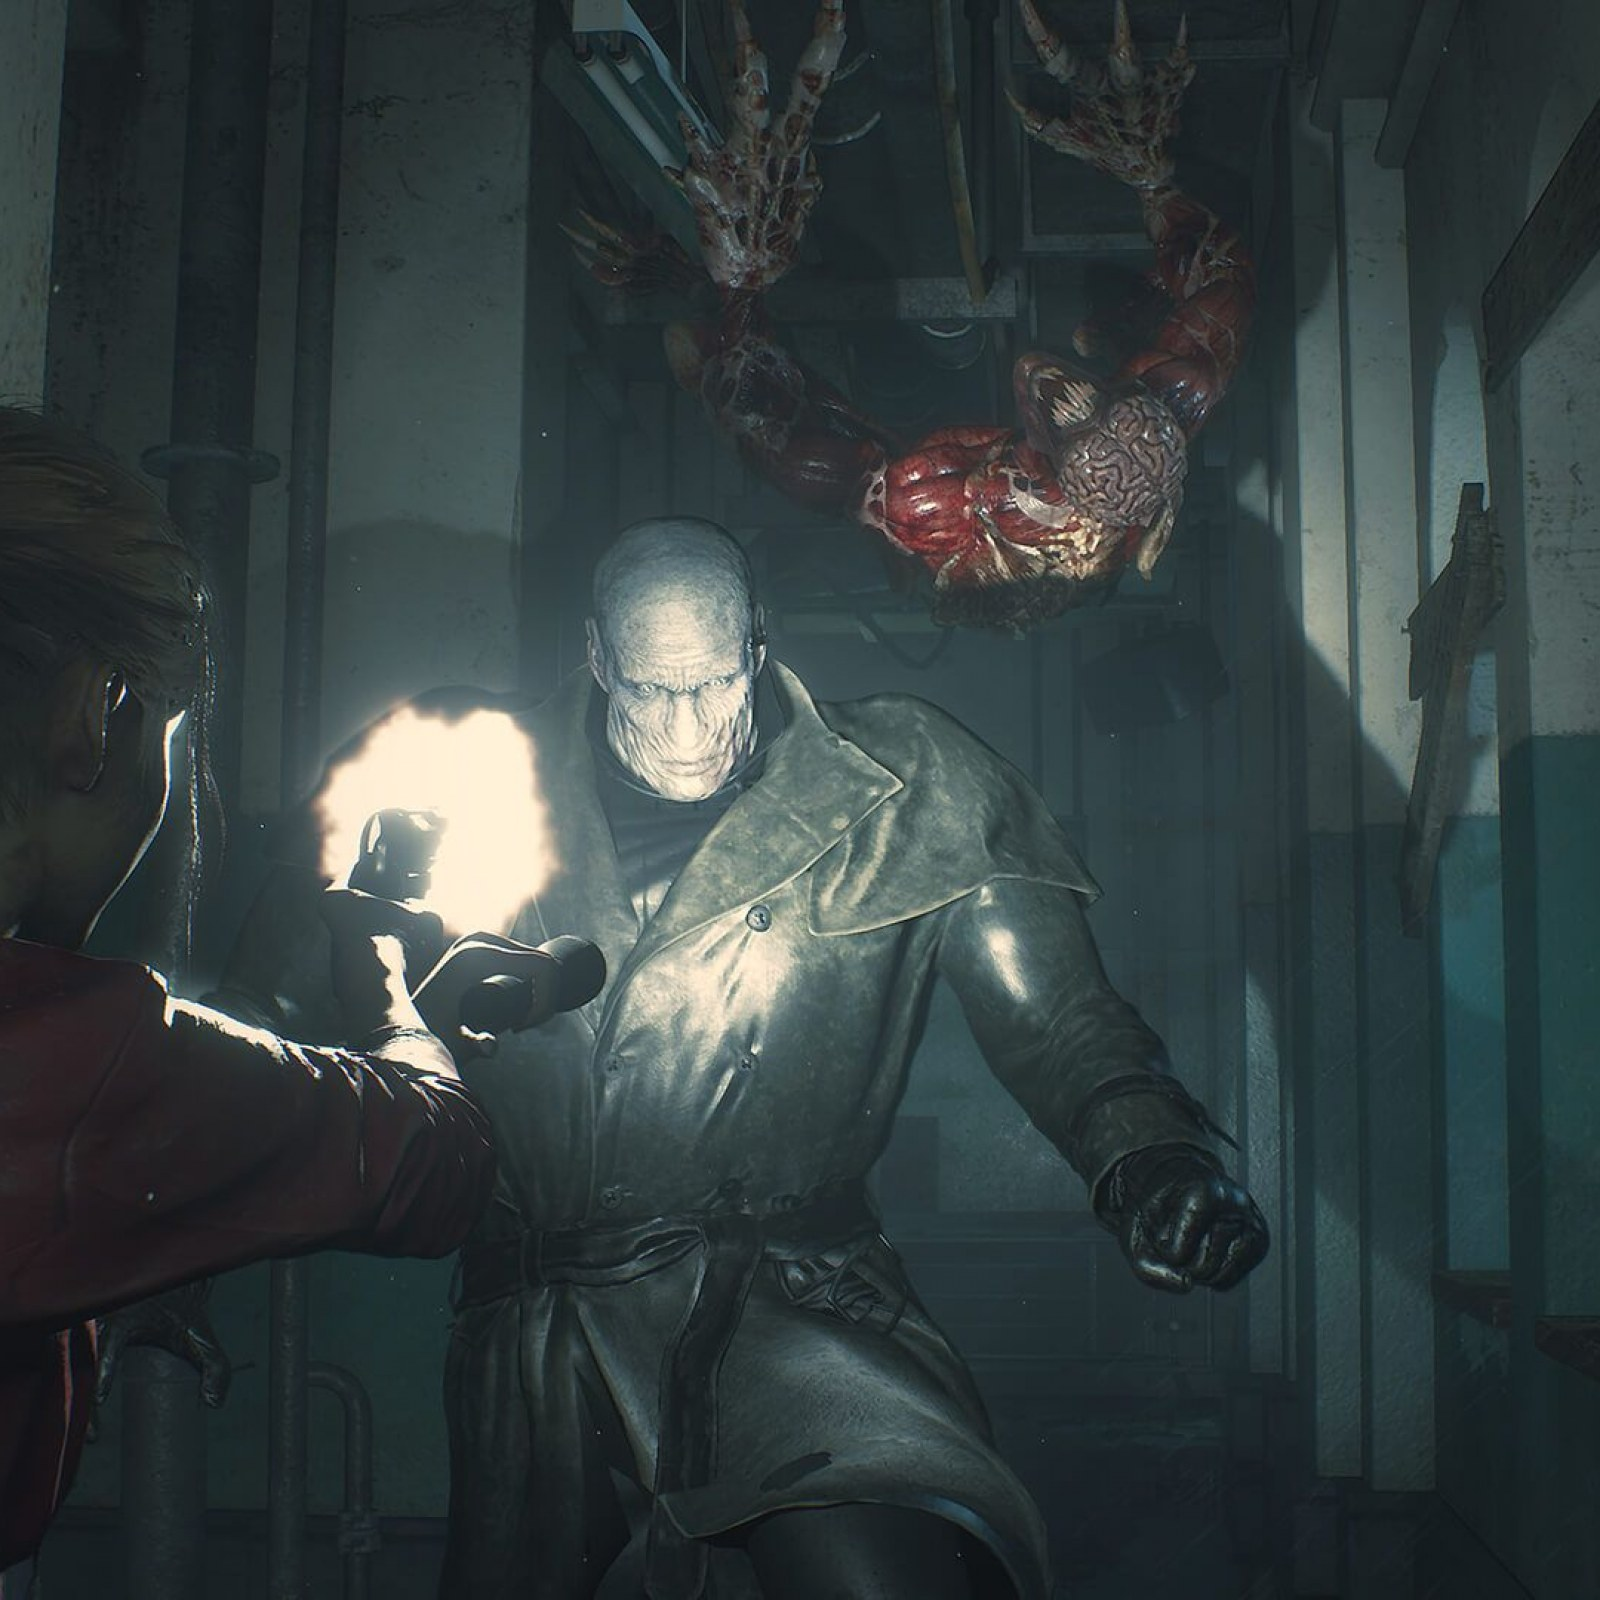 Resident Evil 2' New Game Plus: Unlock New Modes and Get the